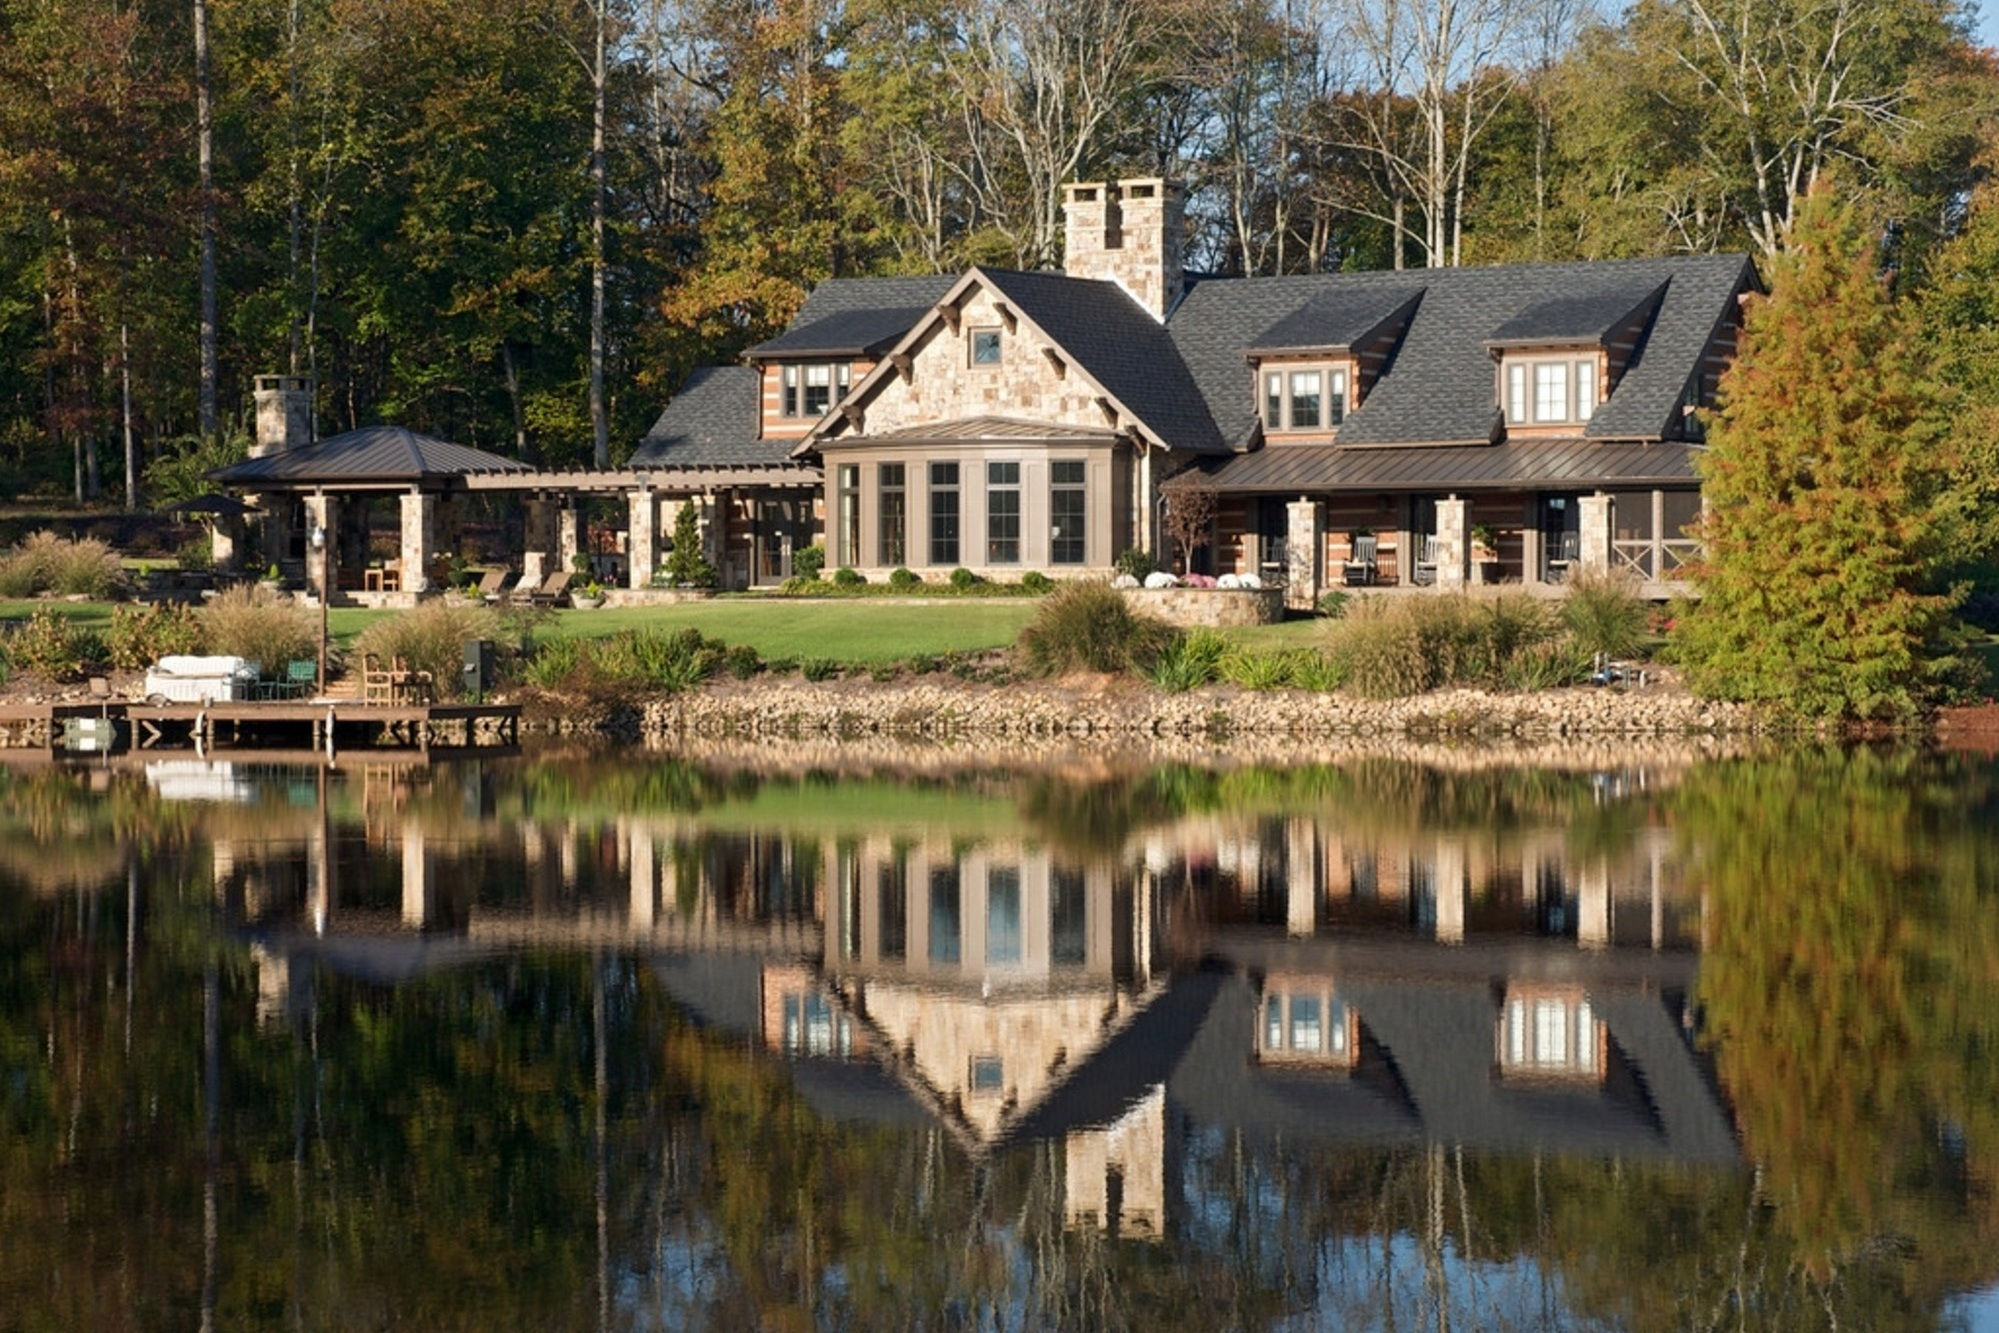 Renovation and addition to an existing family home near Lake Oconee, Georgia. The existing home was a log cabin and the new design responds to this through use of materials and massing. Project completed while employed as a project manager for Kemp Hall Studio which was the Architect of record.